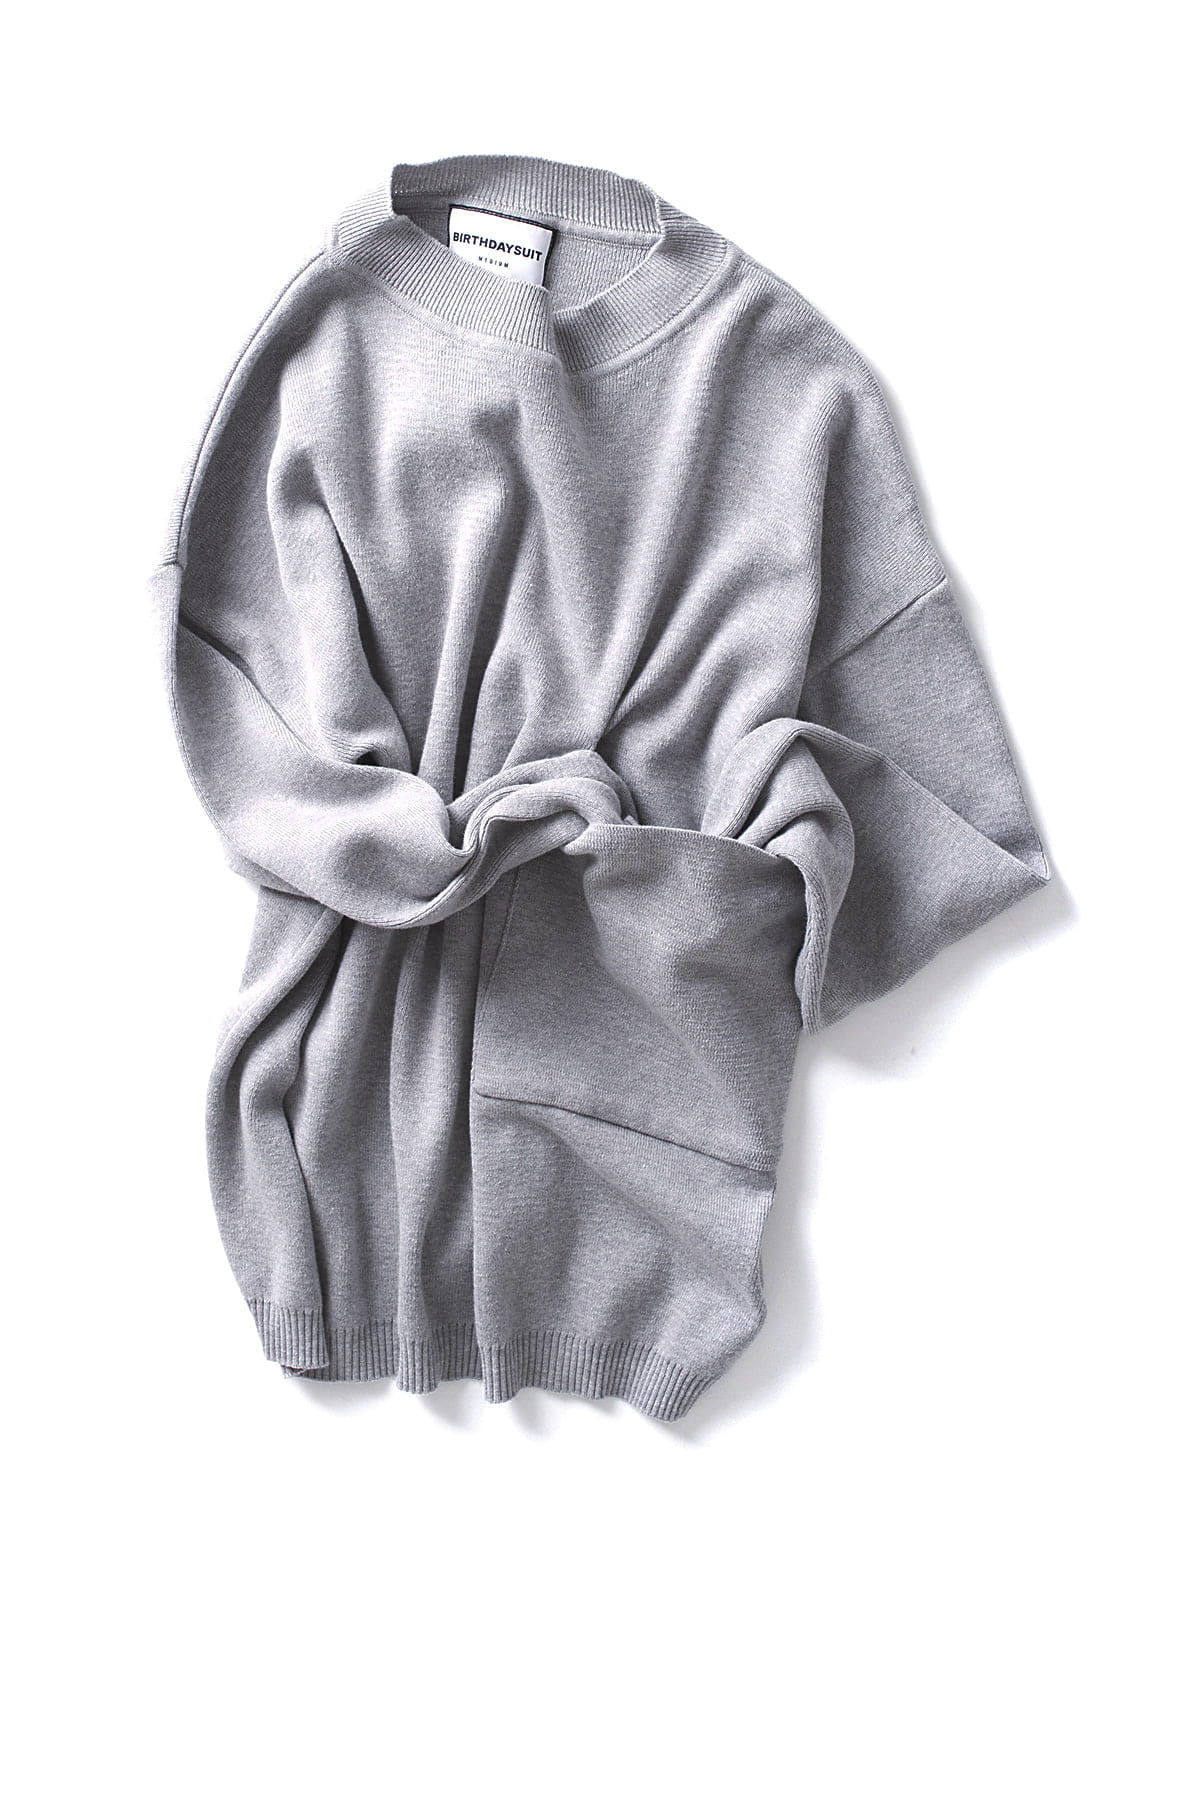 BIRTHDAYSUIT : Big Pocket Knit Pullover (Grey)